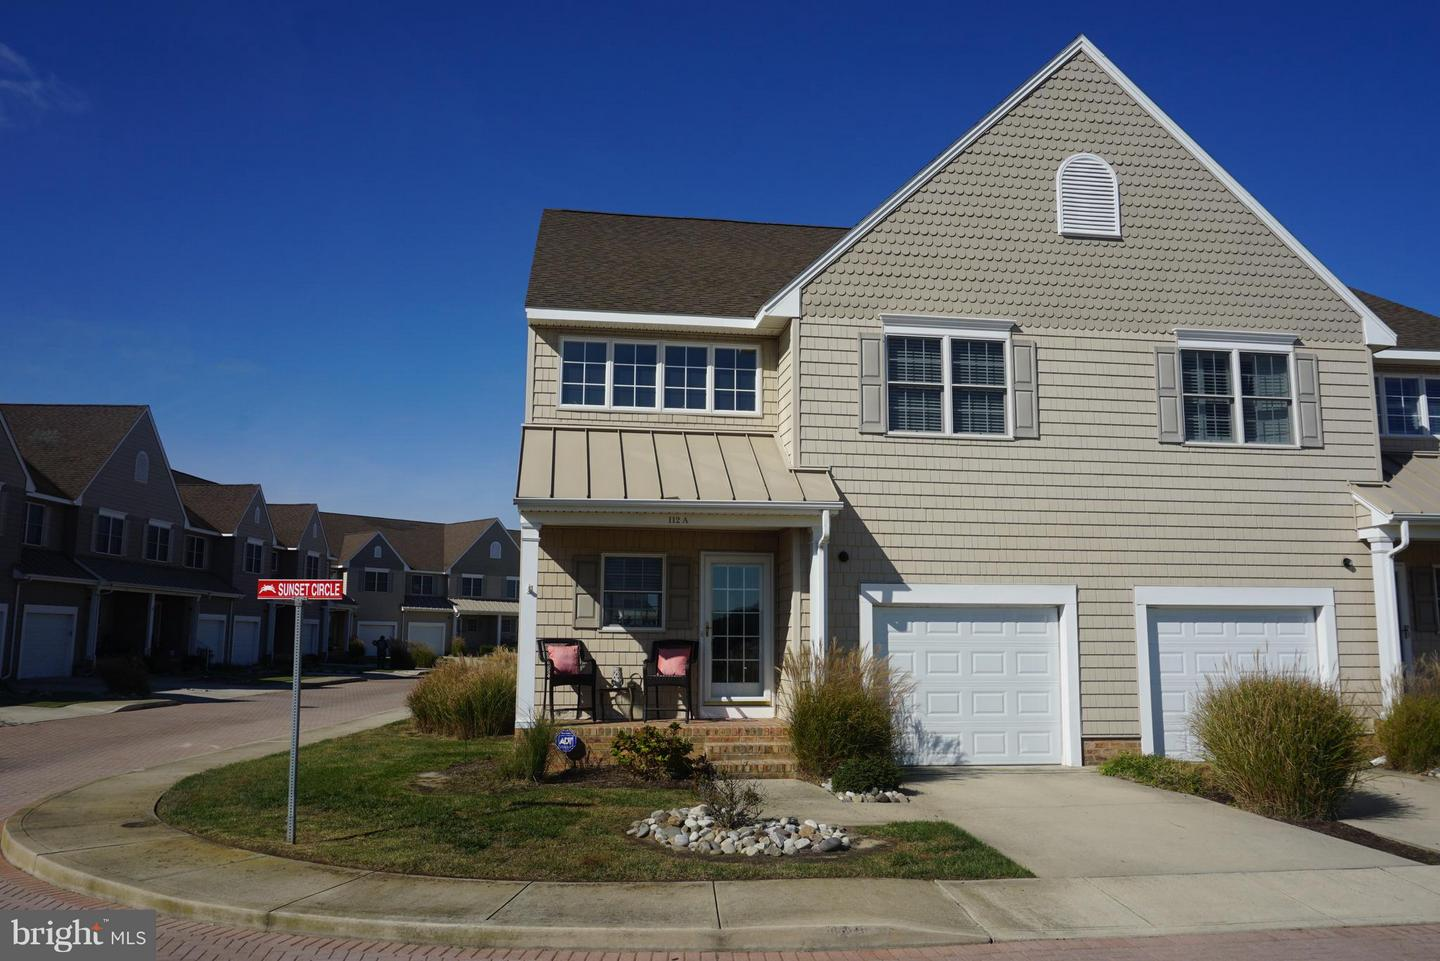 Other Residential for Sale at Waters Edge, 112 A Sunset Circle Crisfield, Maryland 21817 United States